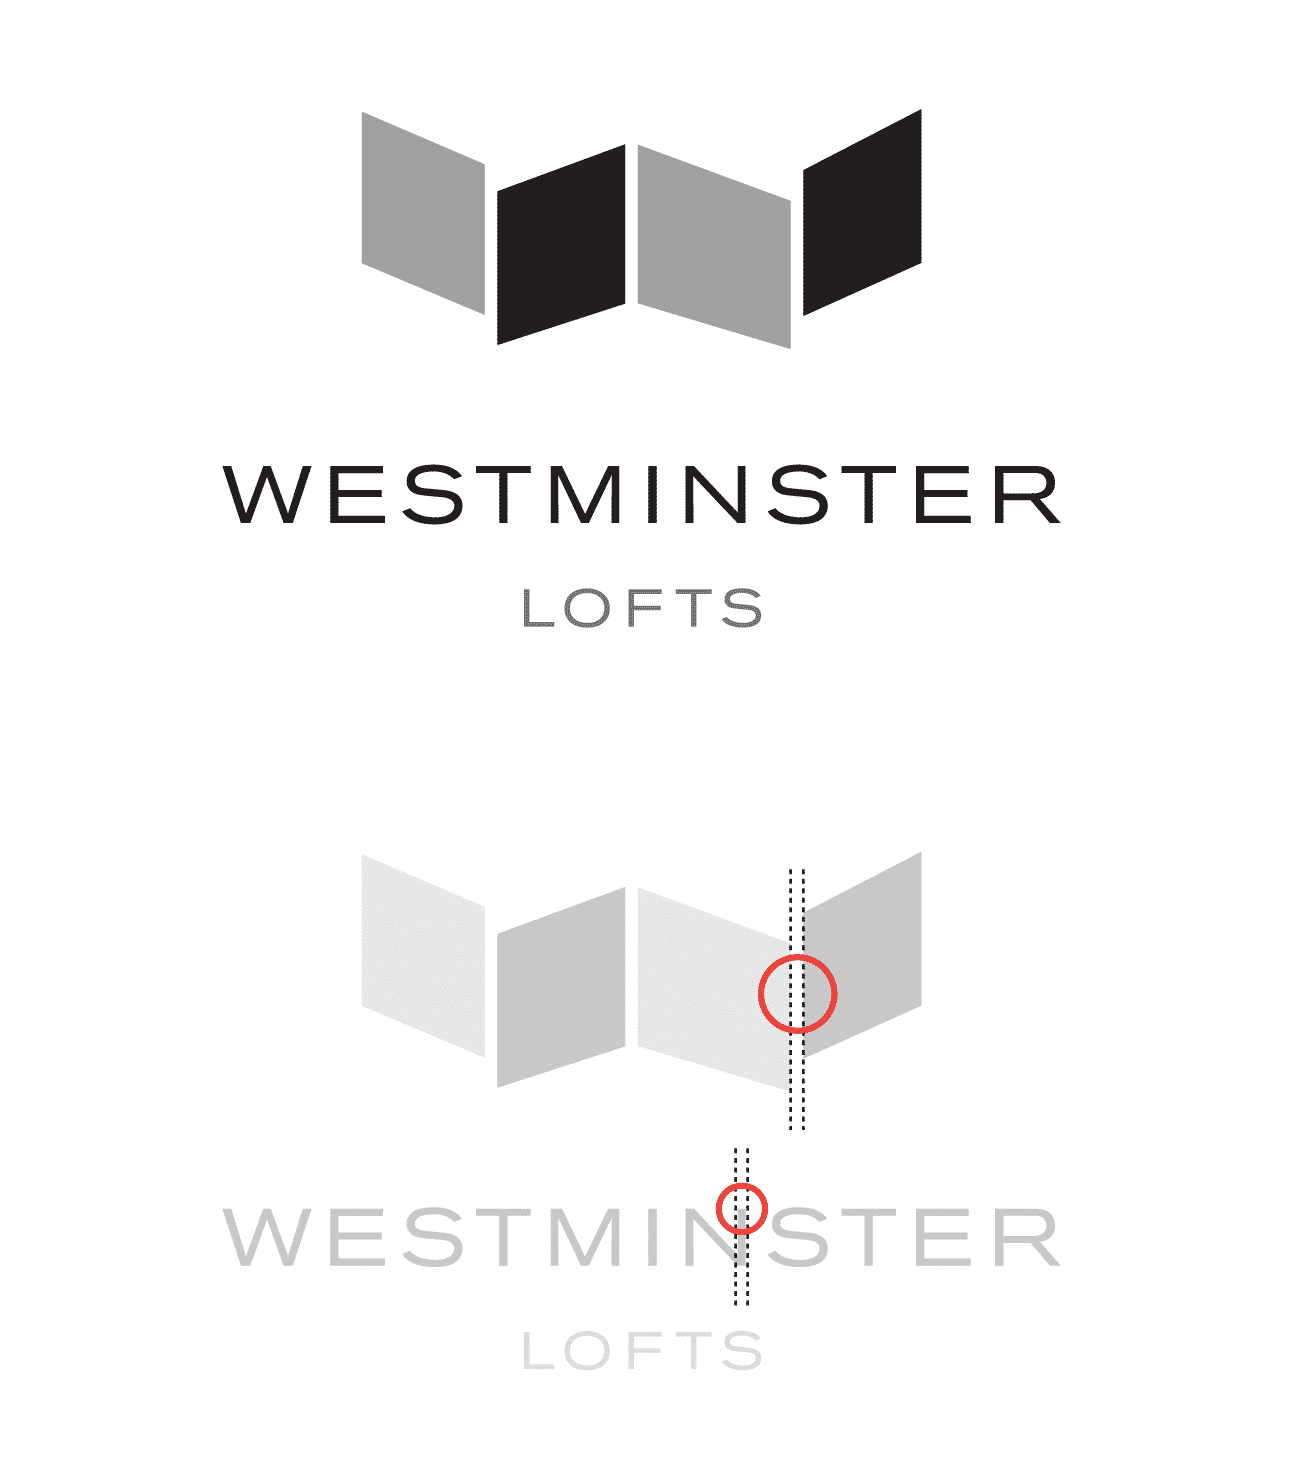 Matching the font to the negative space in the logo icon of Westminster Lofts